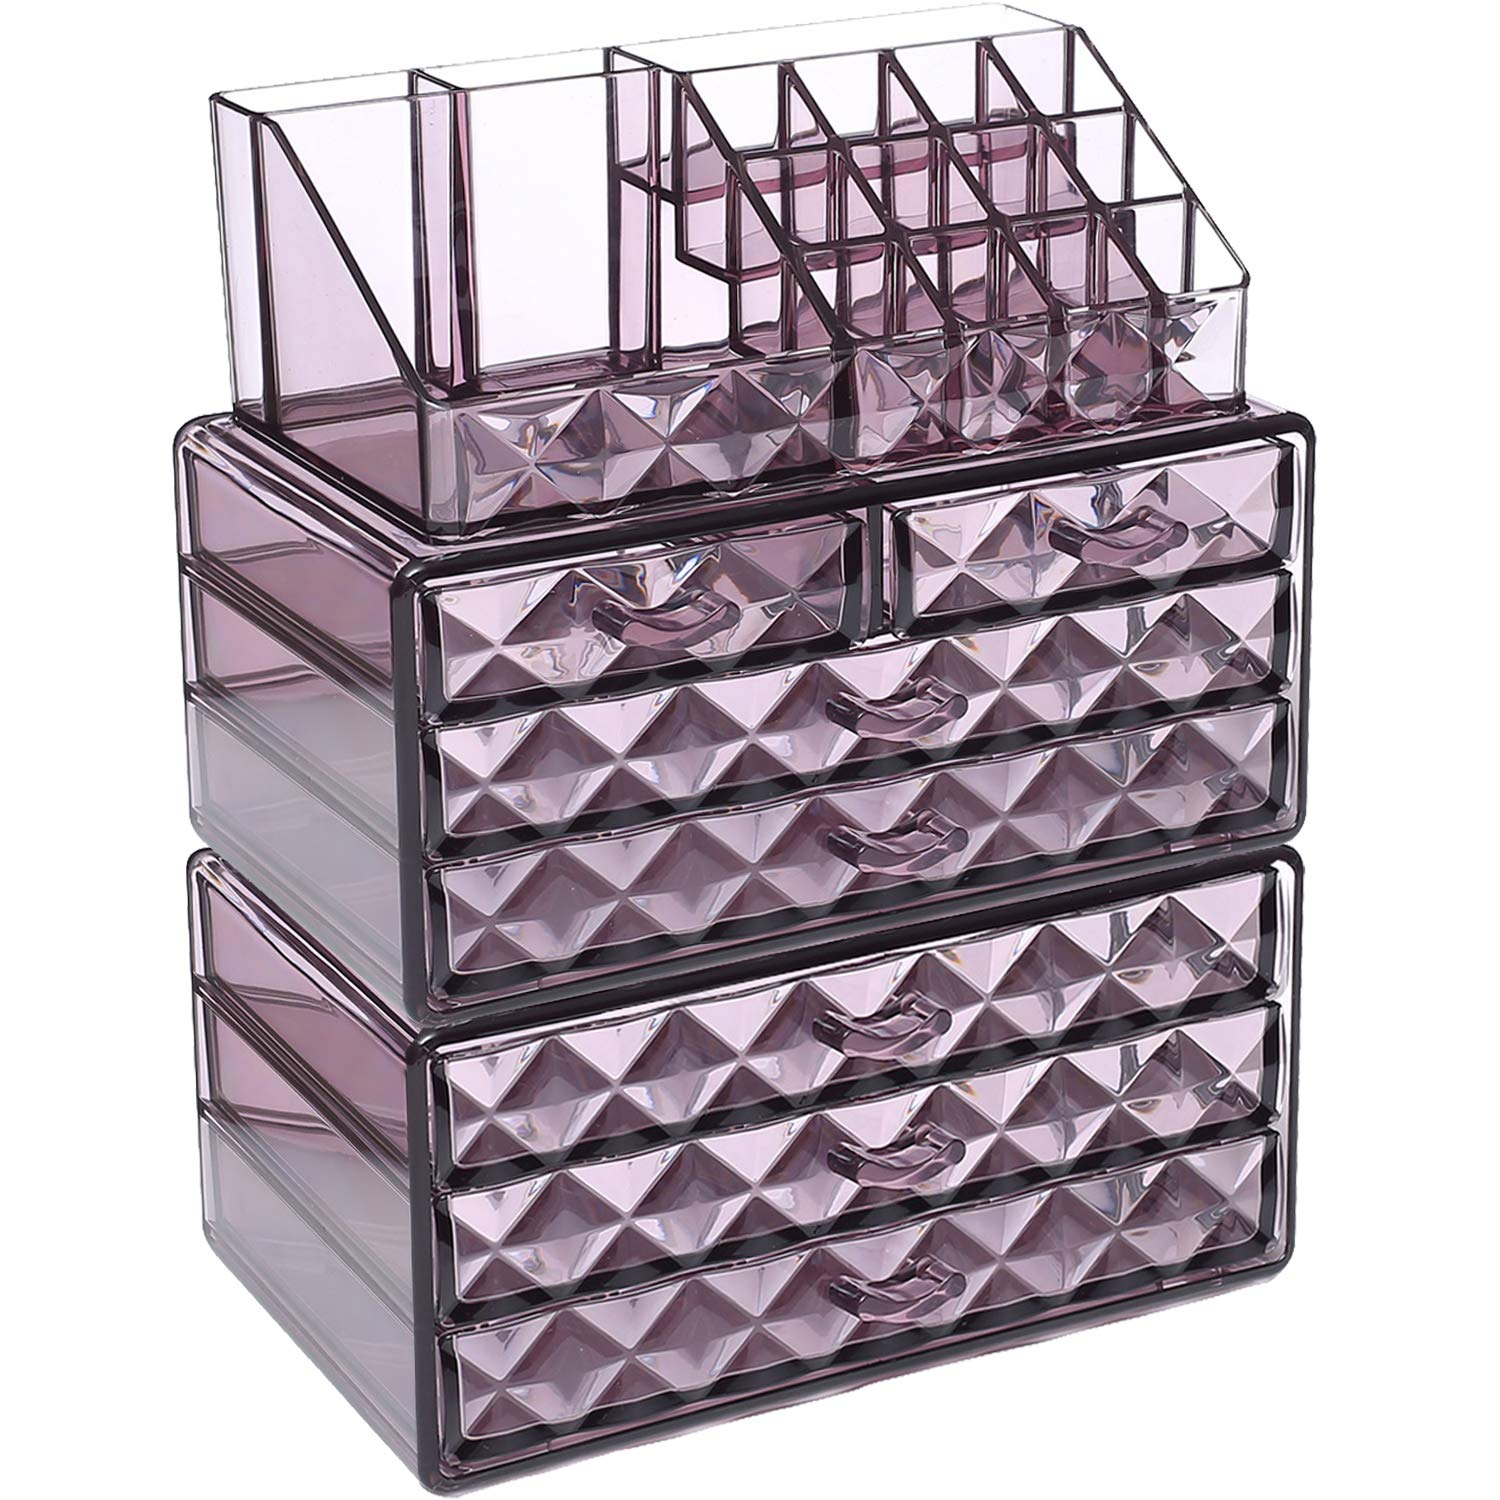 Ikee Design Acrylic Purple Diamond Pattern Jewelry & Cosmetic Storage Display Boxes 3 Pieces Set